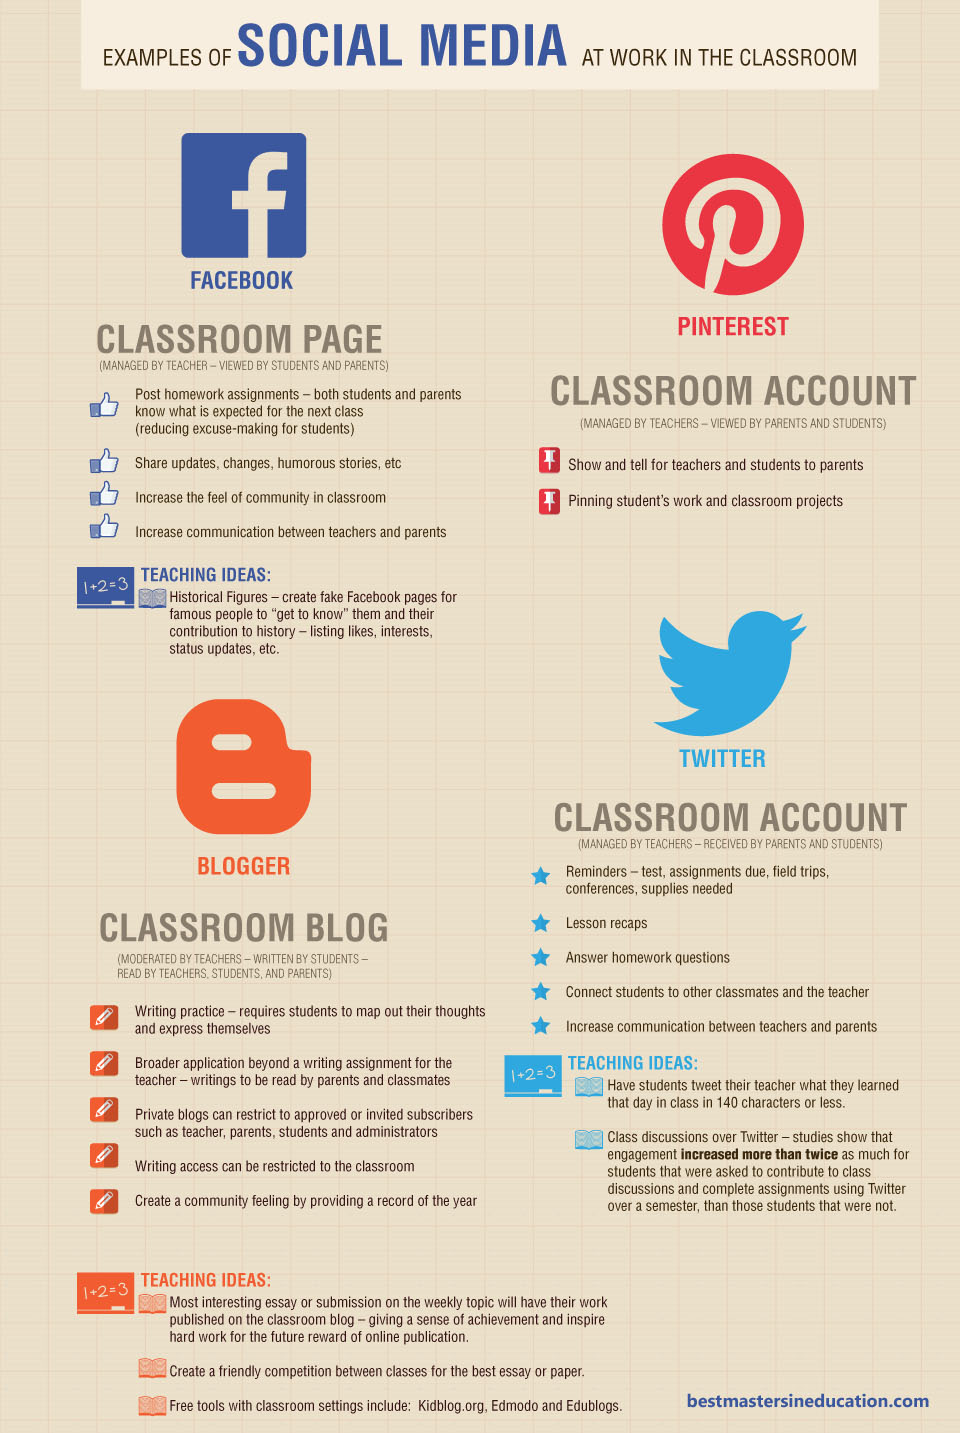 simple examples of social media in the classroom examples of social media in the classroom ideas